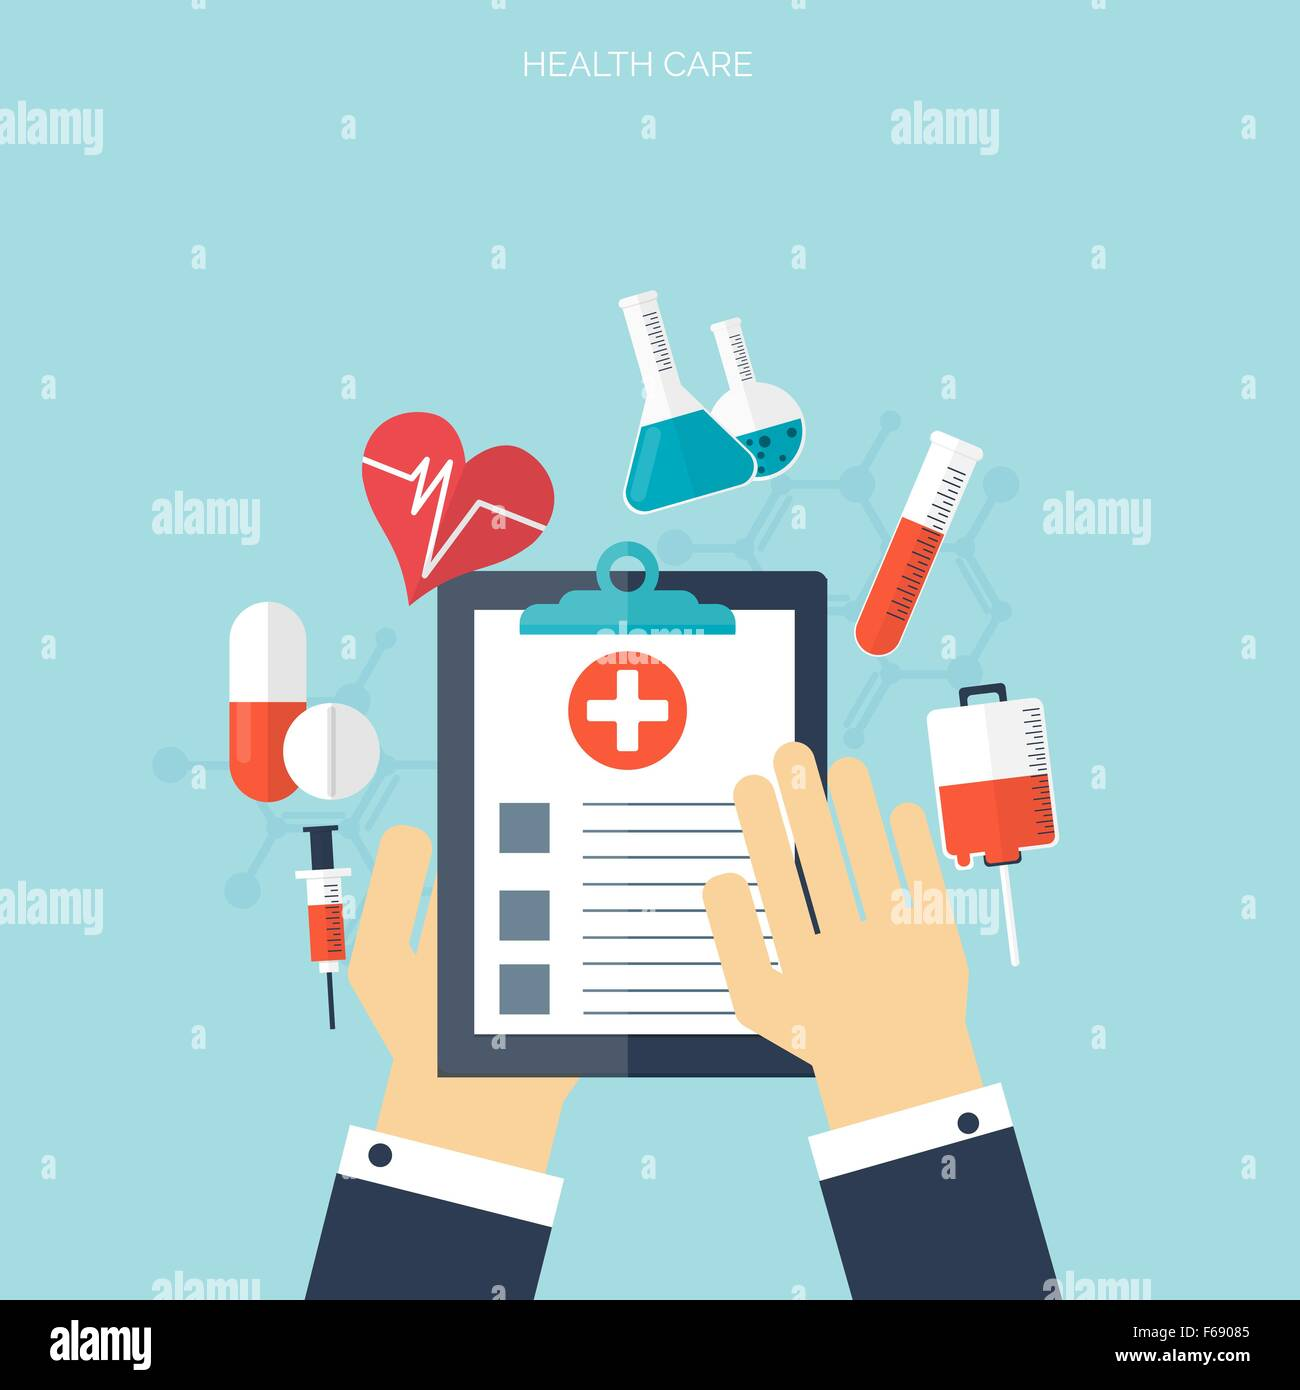 flat health care and medical research background healthcare system